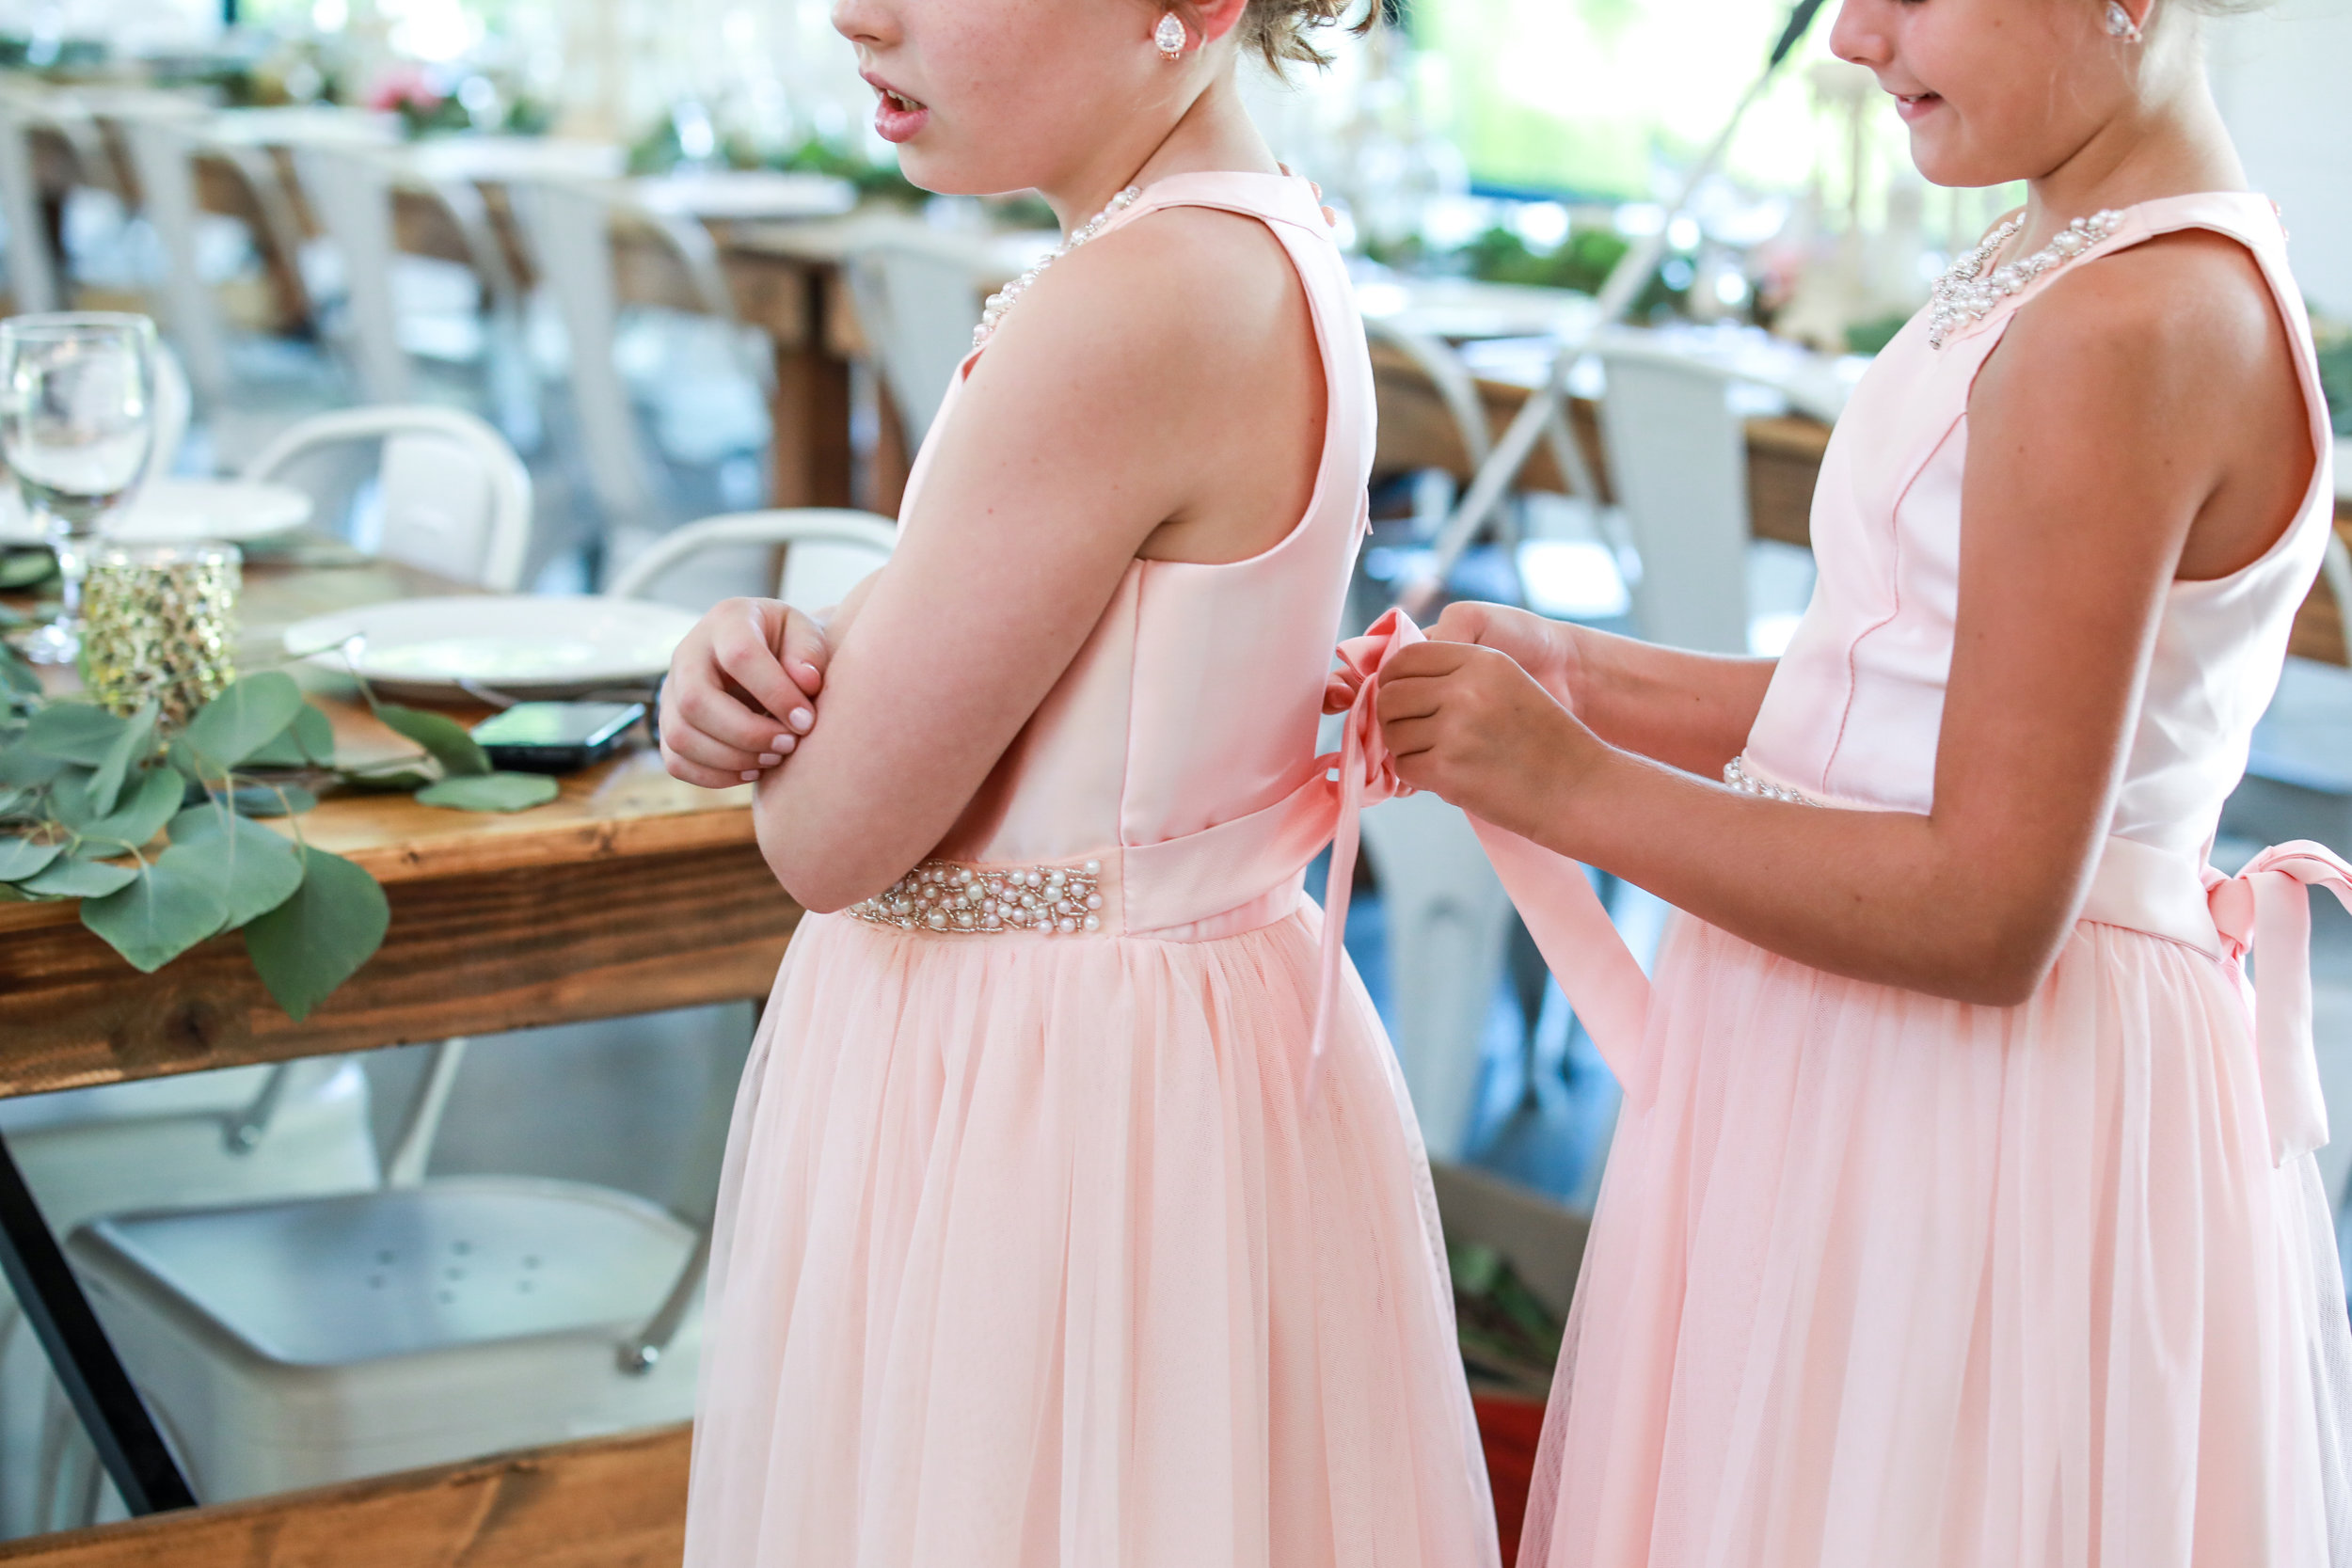 E + J Bloomington at The Wilds wedding photography pink roses blush baby blue bridesmaids dress flower girl destination photo -24.jpg